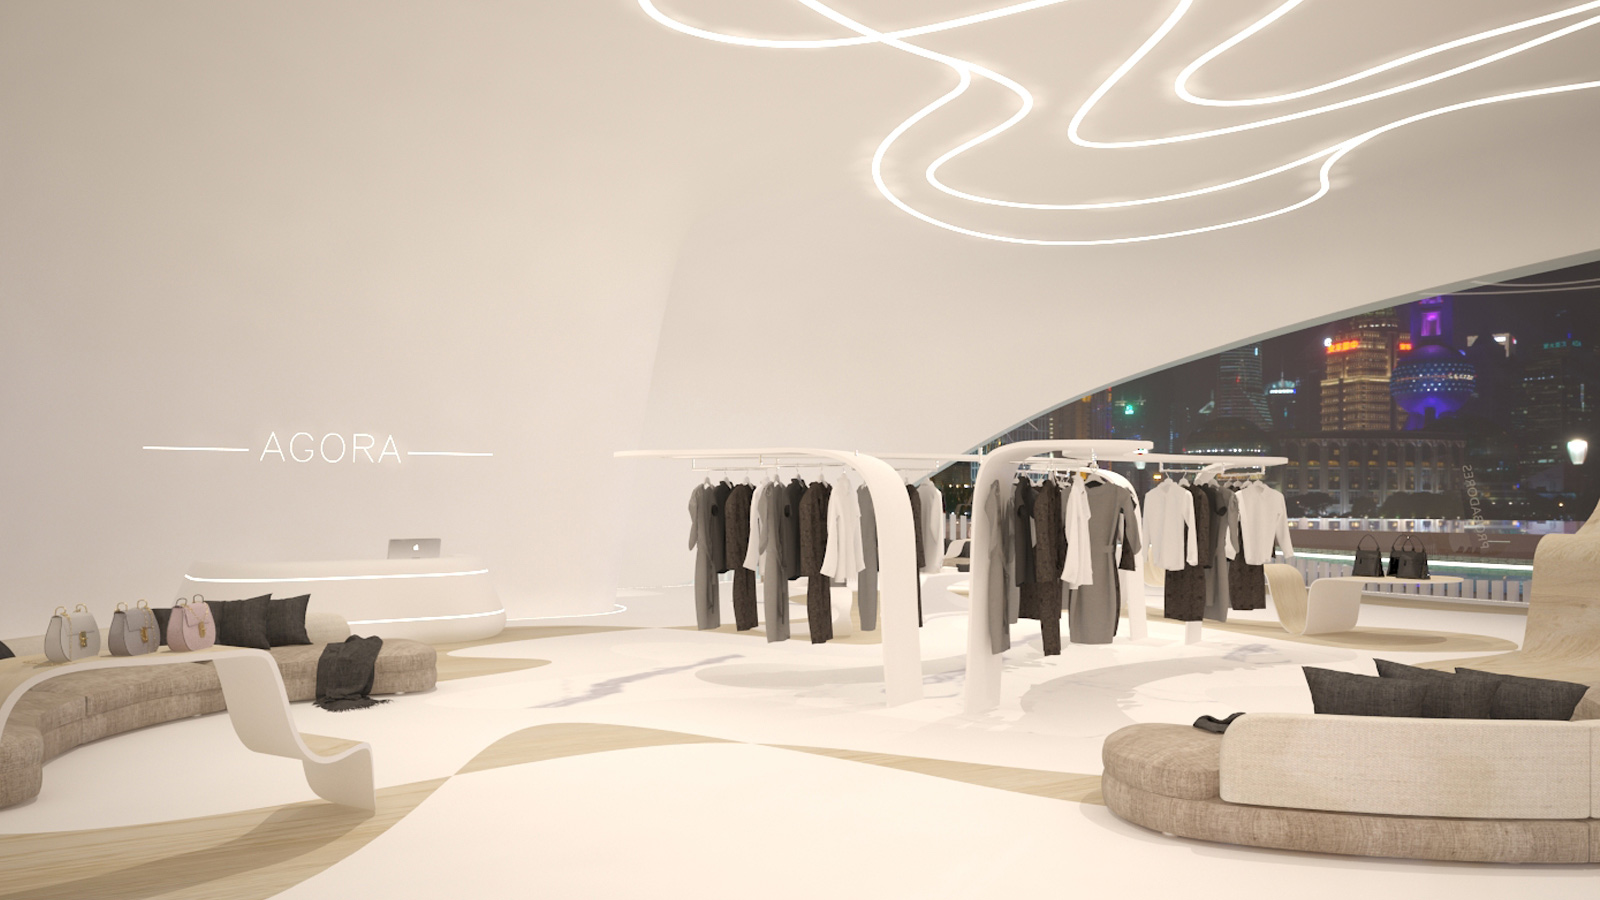 The 12th Porcelanosa Awards Finalists: Ágora, a luxury boutique in New York